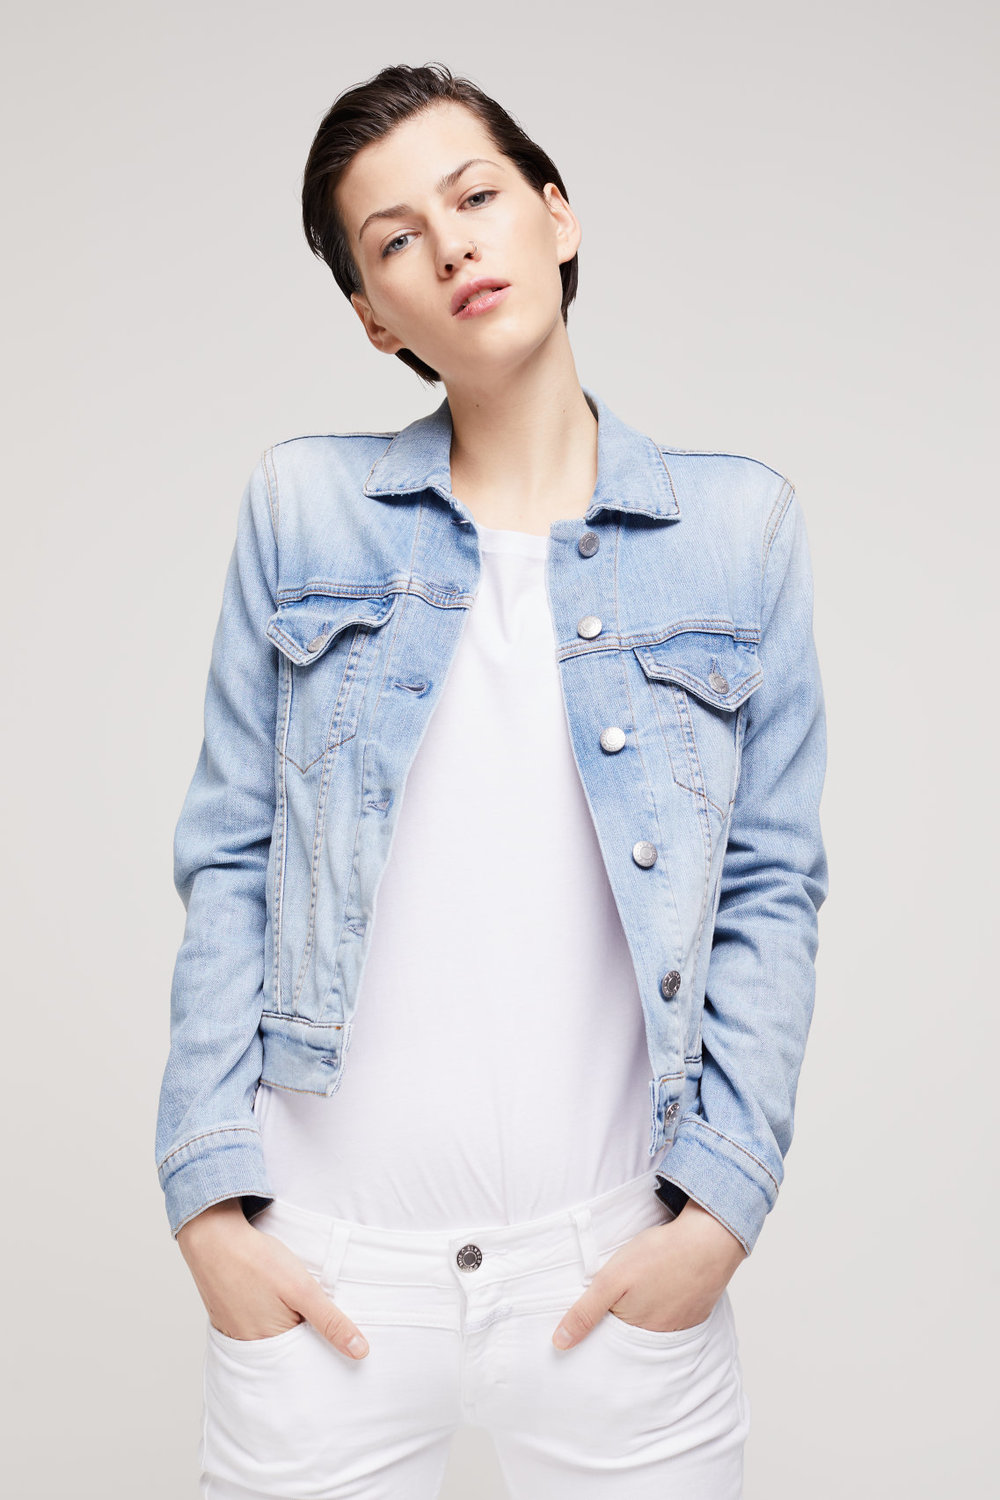 Closed-Twist-denim-jacket.1.jpg